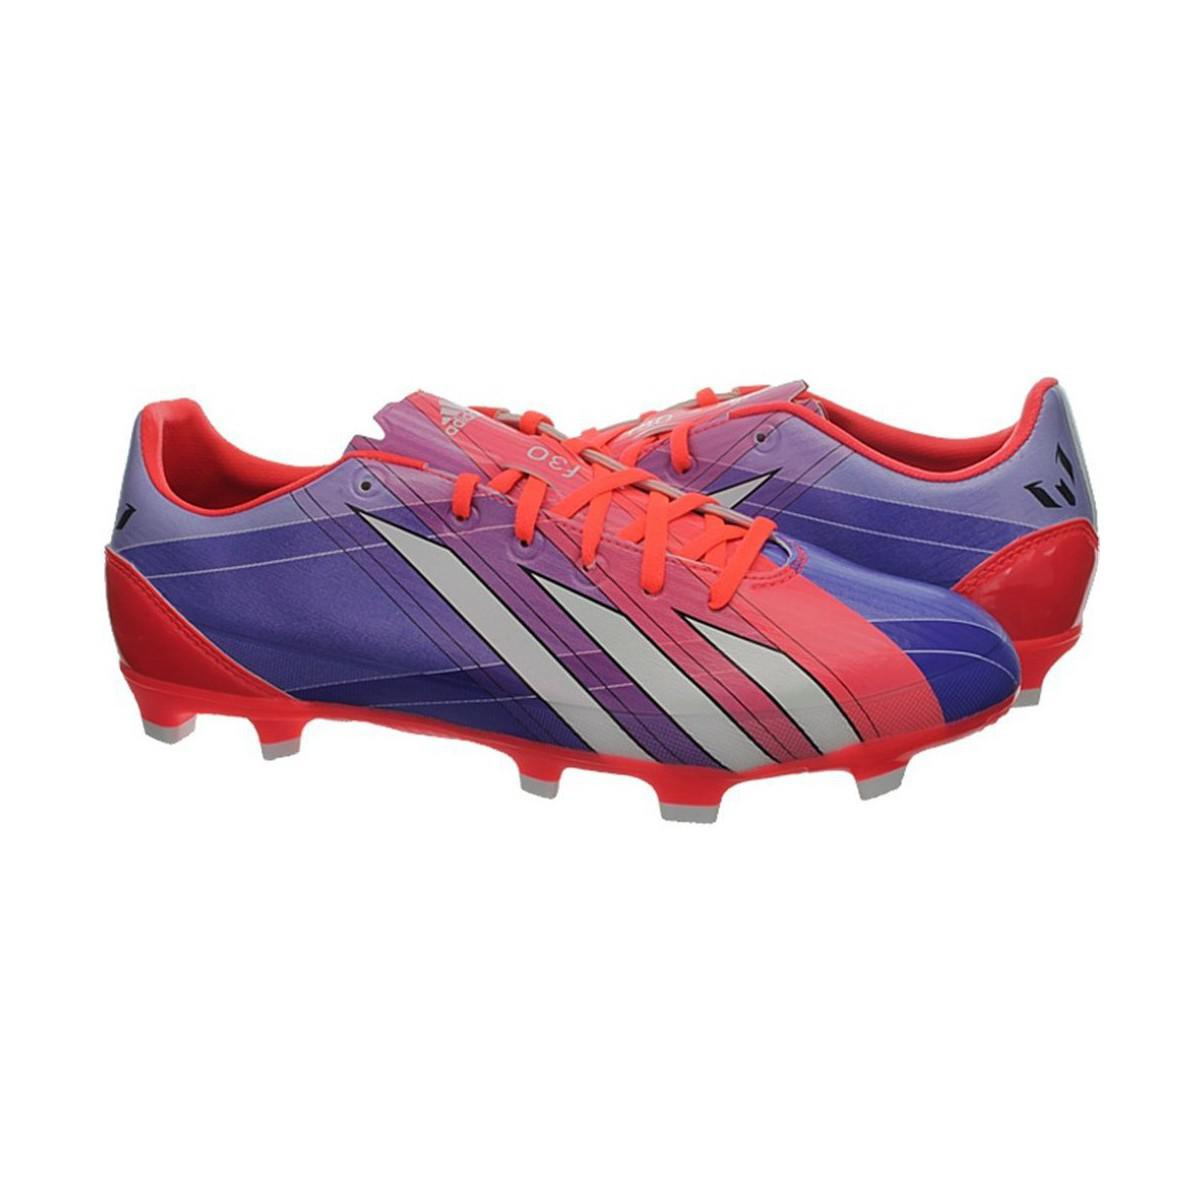 innovative design 108f5 133c2 adidas F30 Trx Fg Messi Mens Football Boots In Red in Red fo